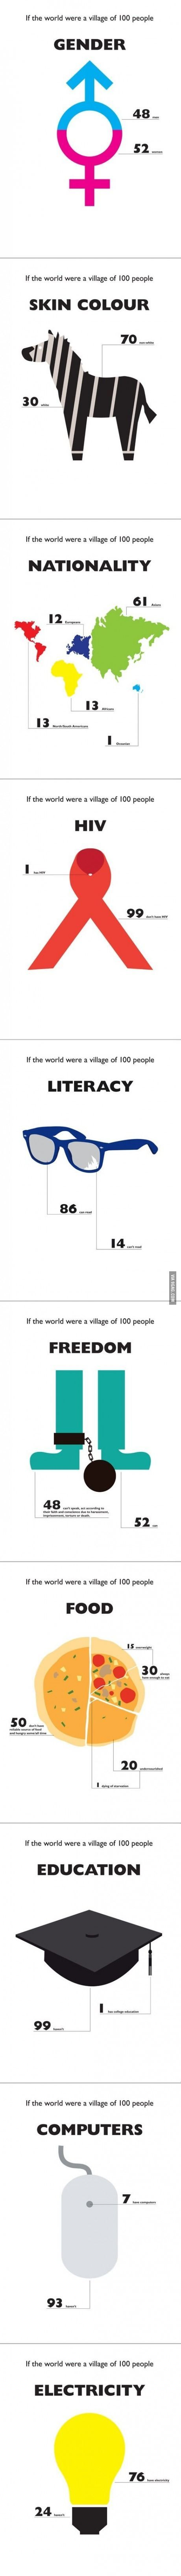 If the world were a village of 100 people... So interesting!